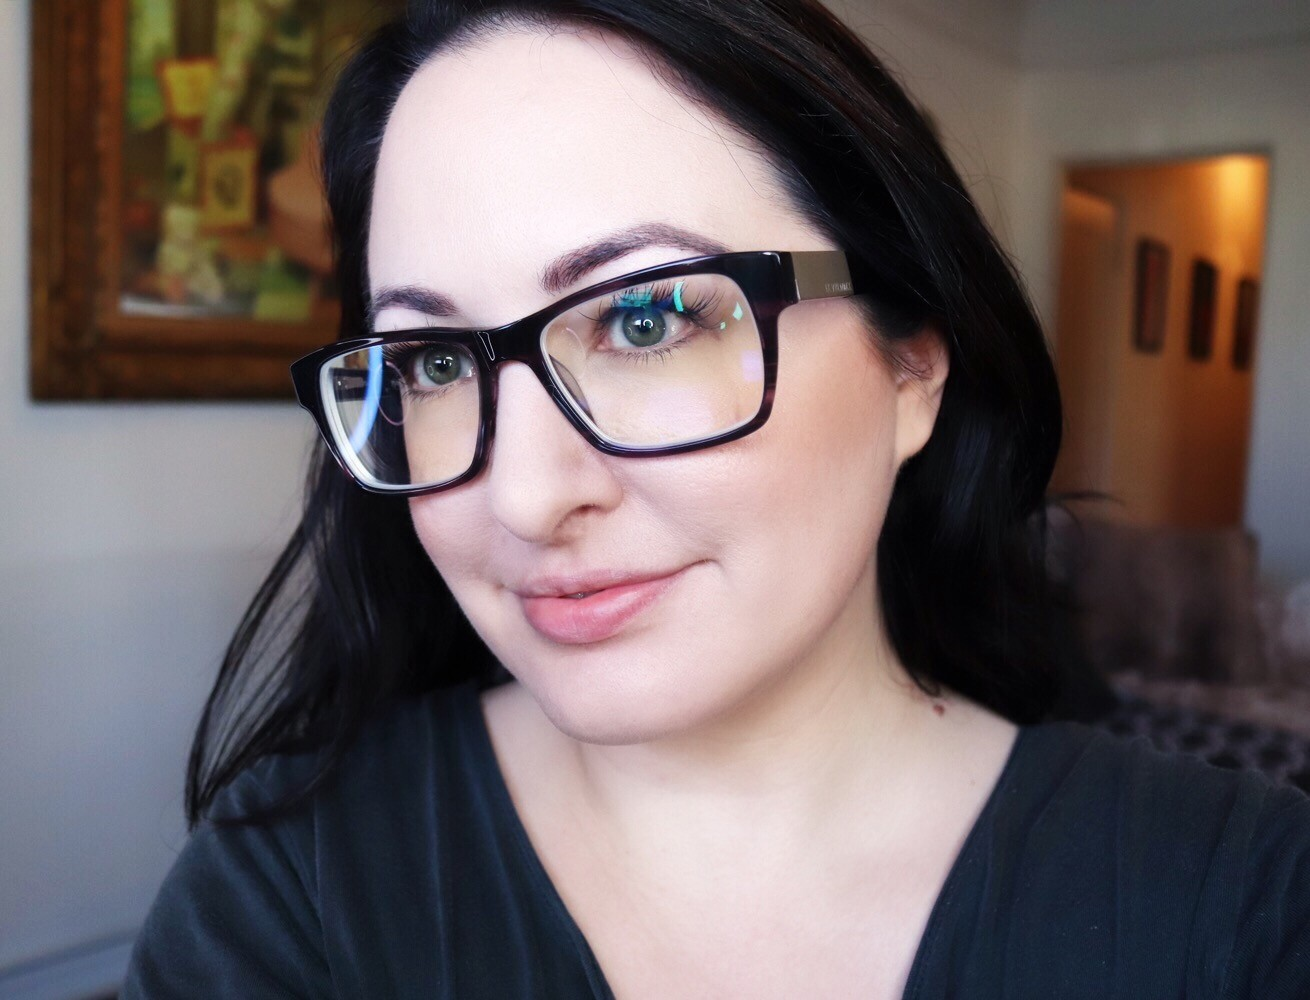 Michelle Lane Chelsea Eyeglass Frames Review by Popular Los Angeles Lifestyle Blogger, My Beauty Bunny - My New Specs and Shades From Coastal Eyewear featured by popular Los Angeles style blogger, My Beauty Bunny